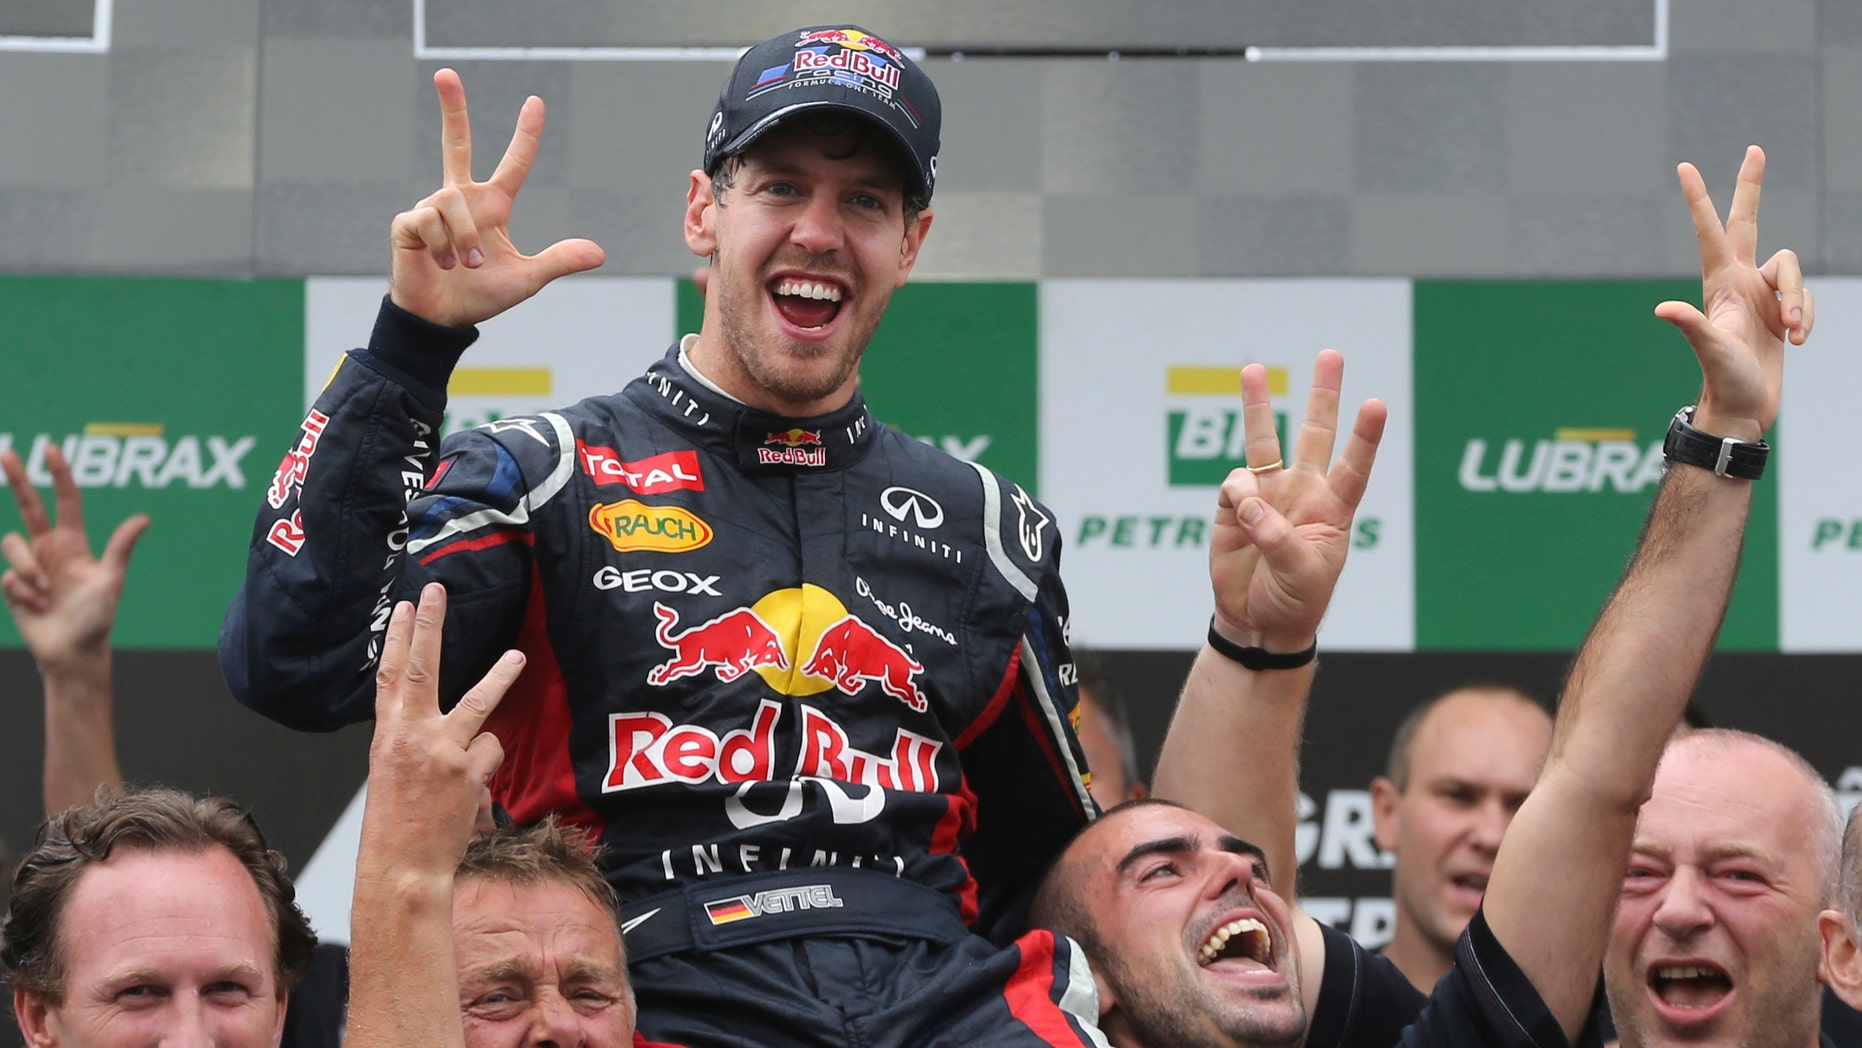 Red Bull driver Sebastian Vettel, center, of Germany, celebrates with members of his team after the Formula One Brazilian Grand Prix at the Interlagos race track in Sao Paulo, Brazil,  Sunday, Nov. 25, 2012. (AP Photo/Andre Penner)